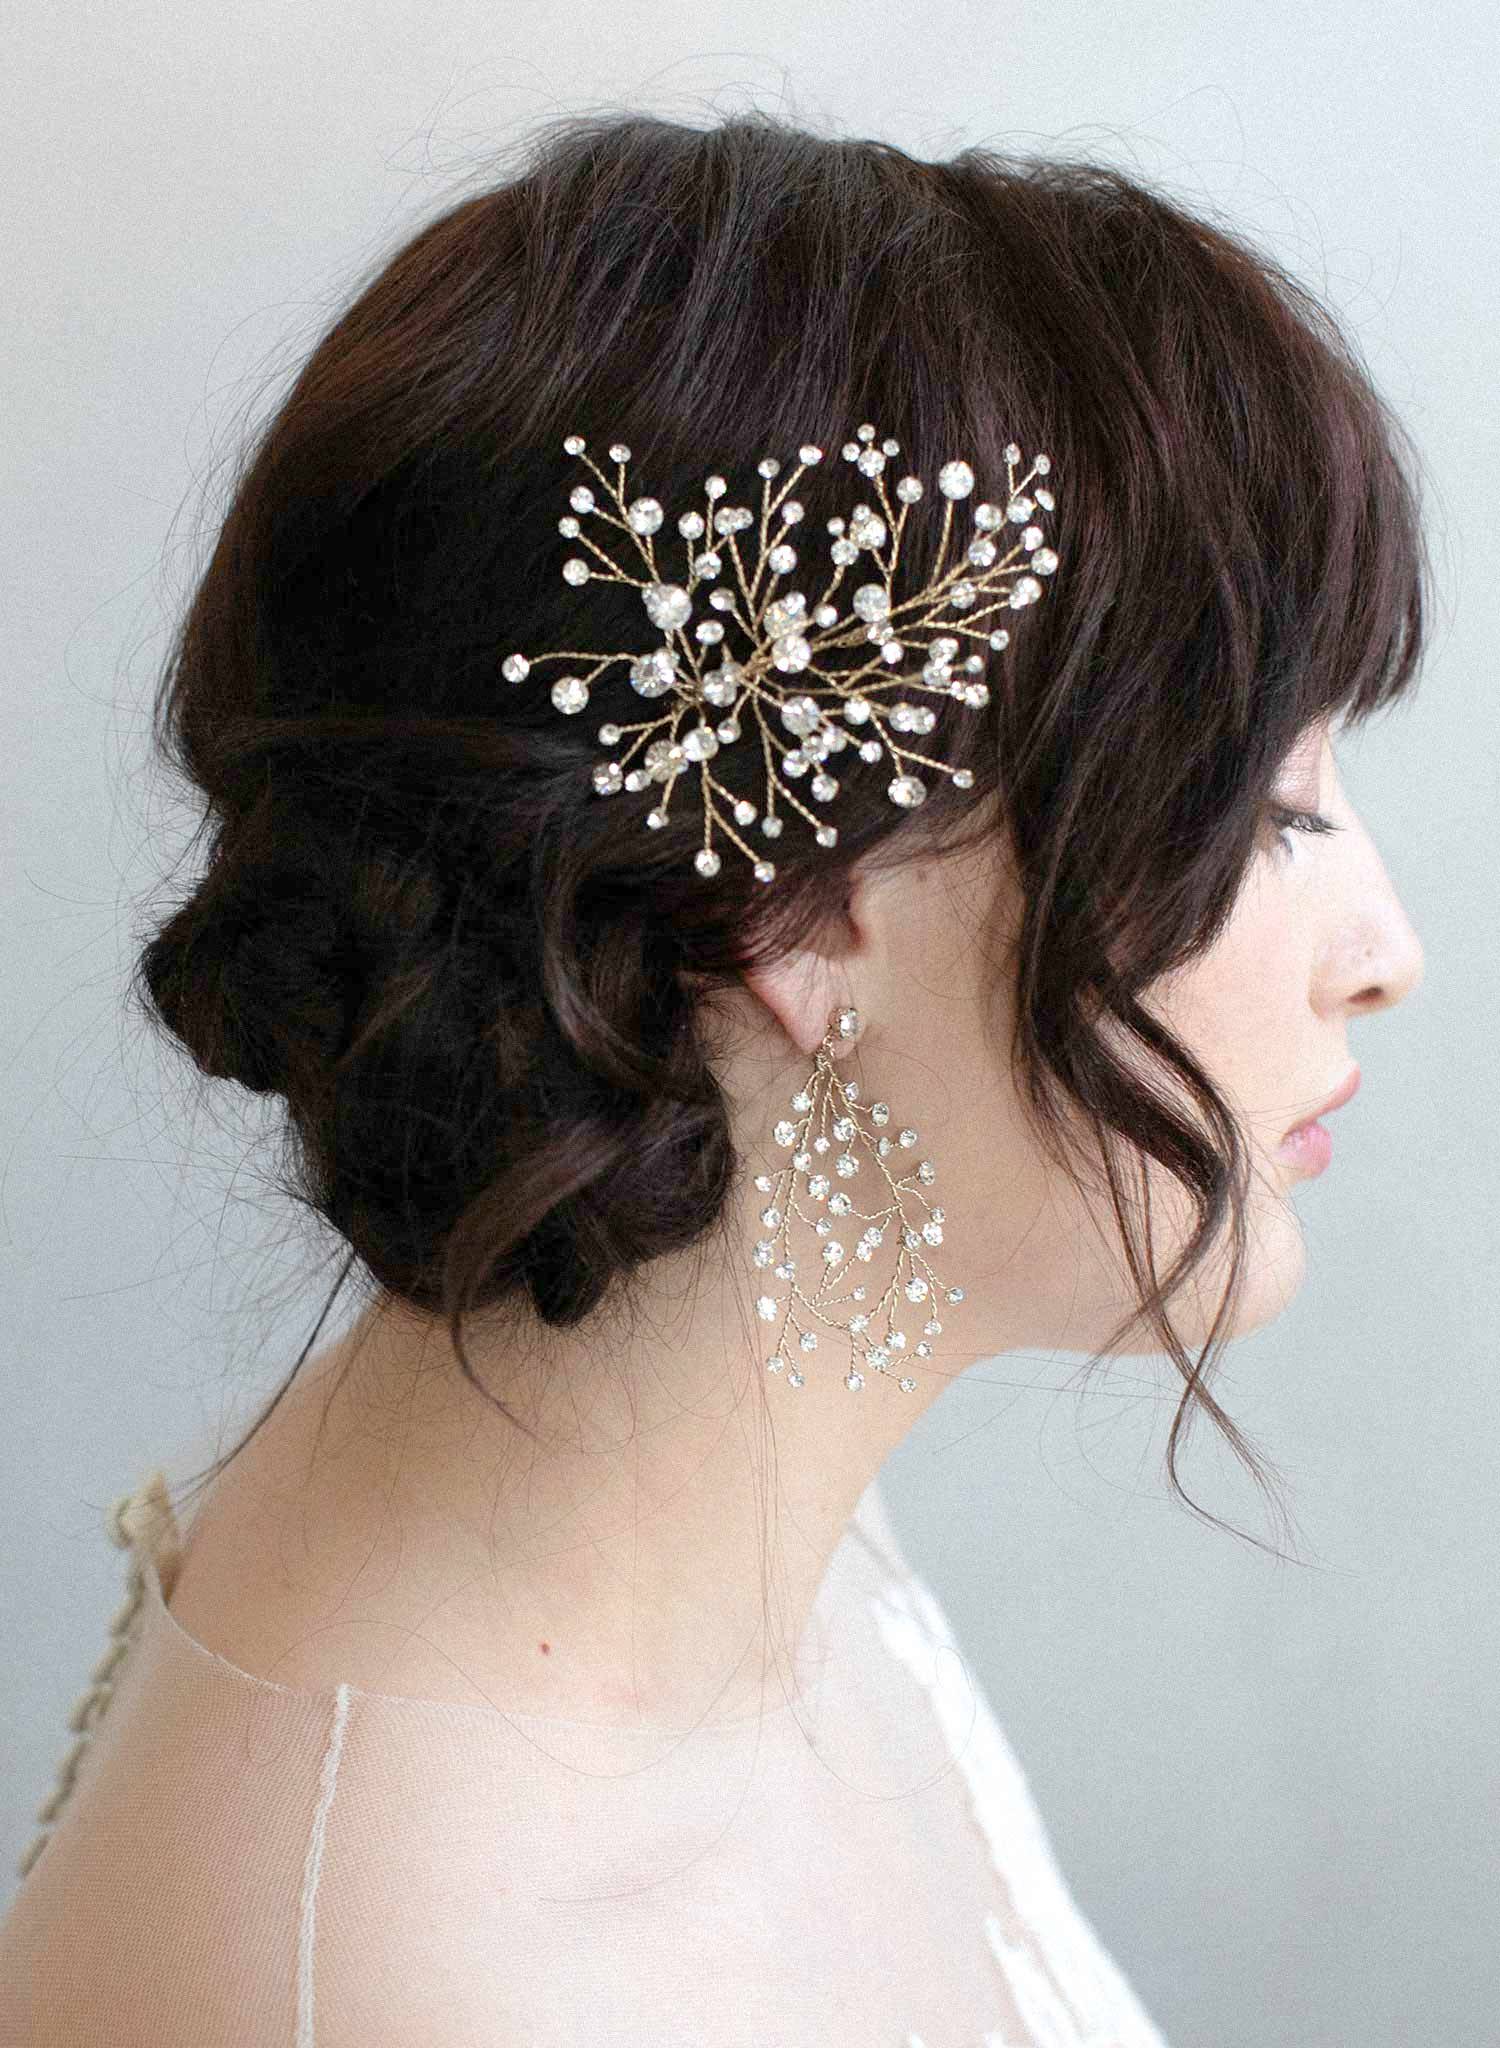 Rhinestone bursting bouquet hair pin - Style #909